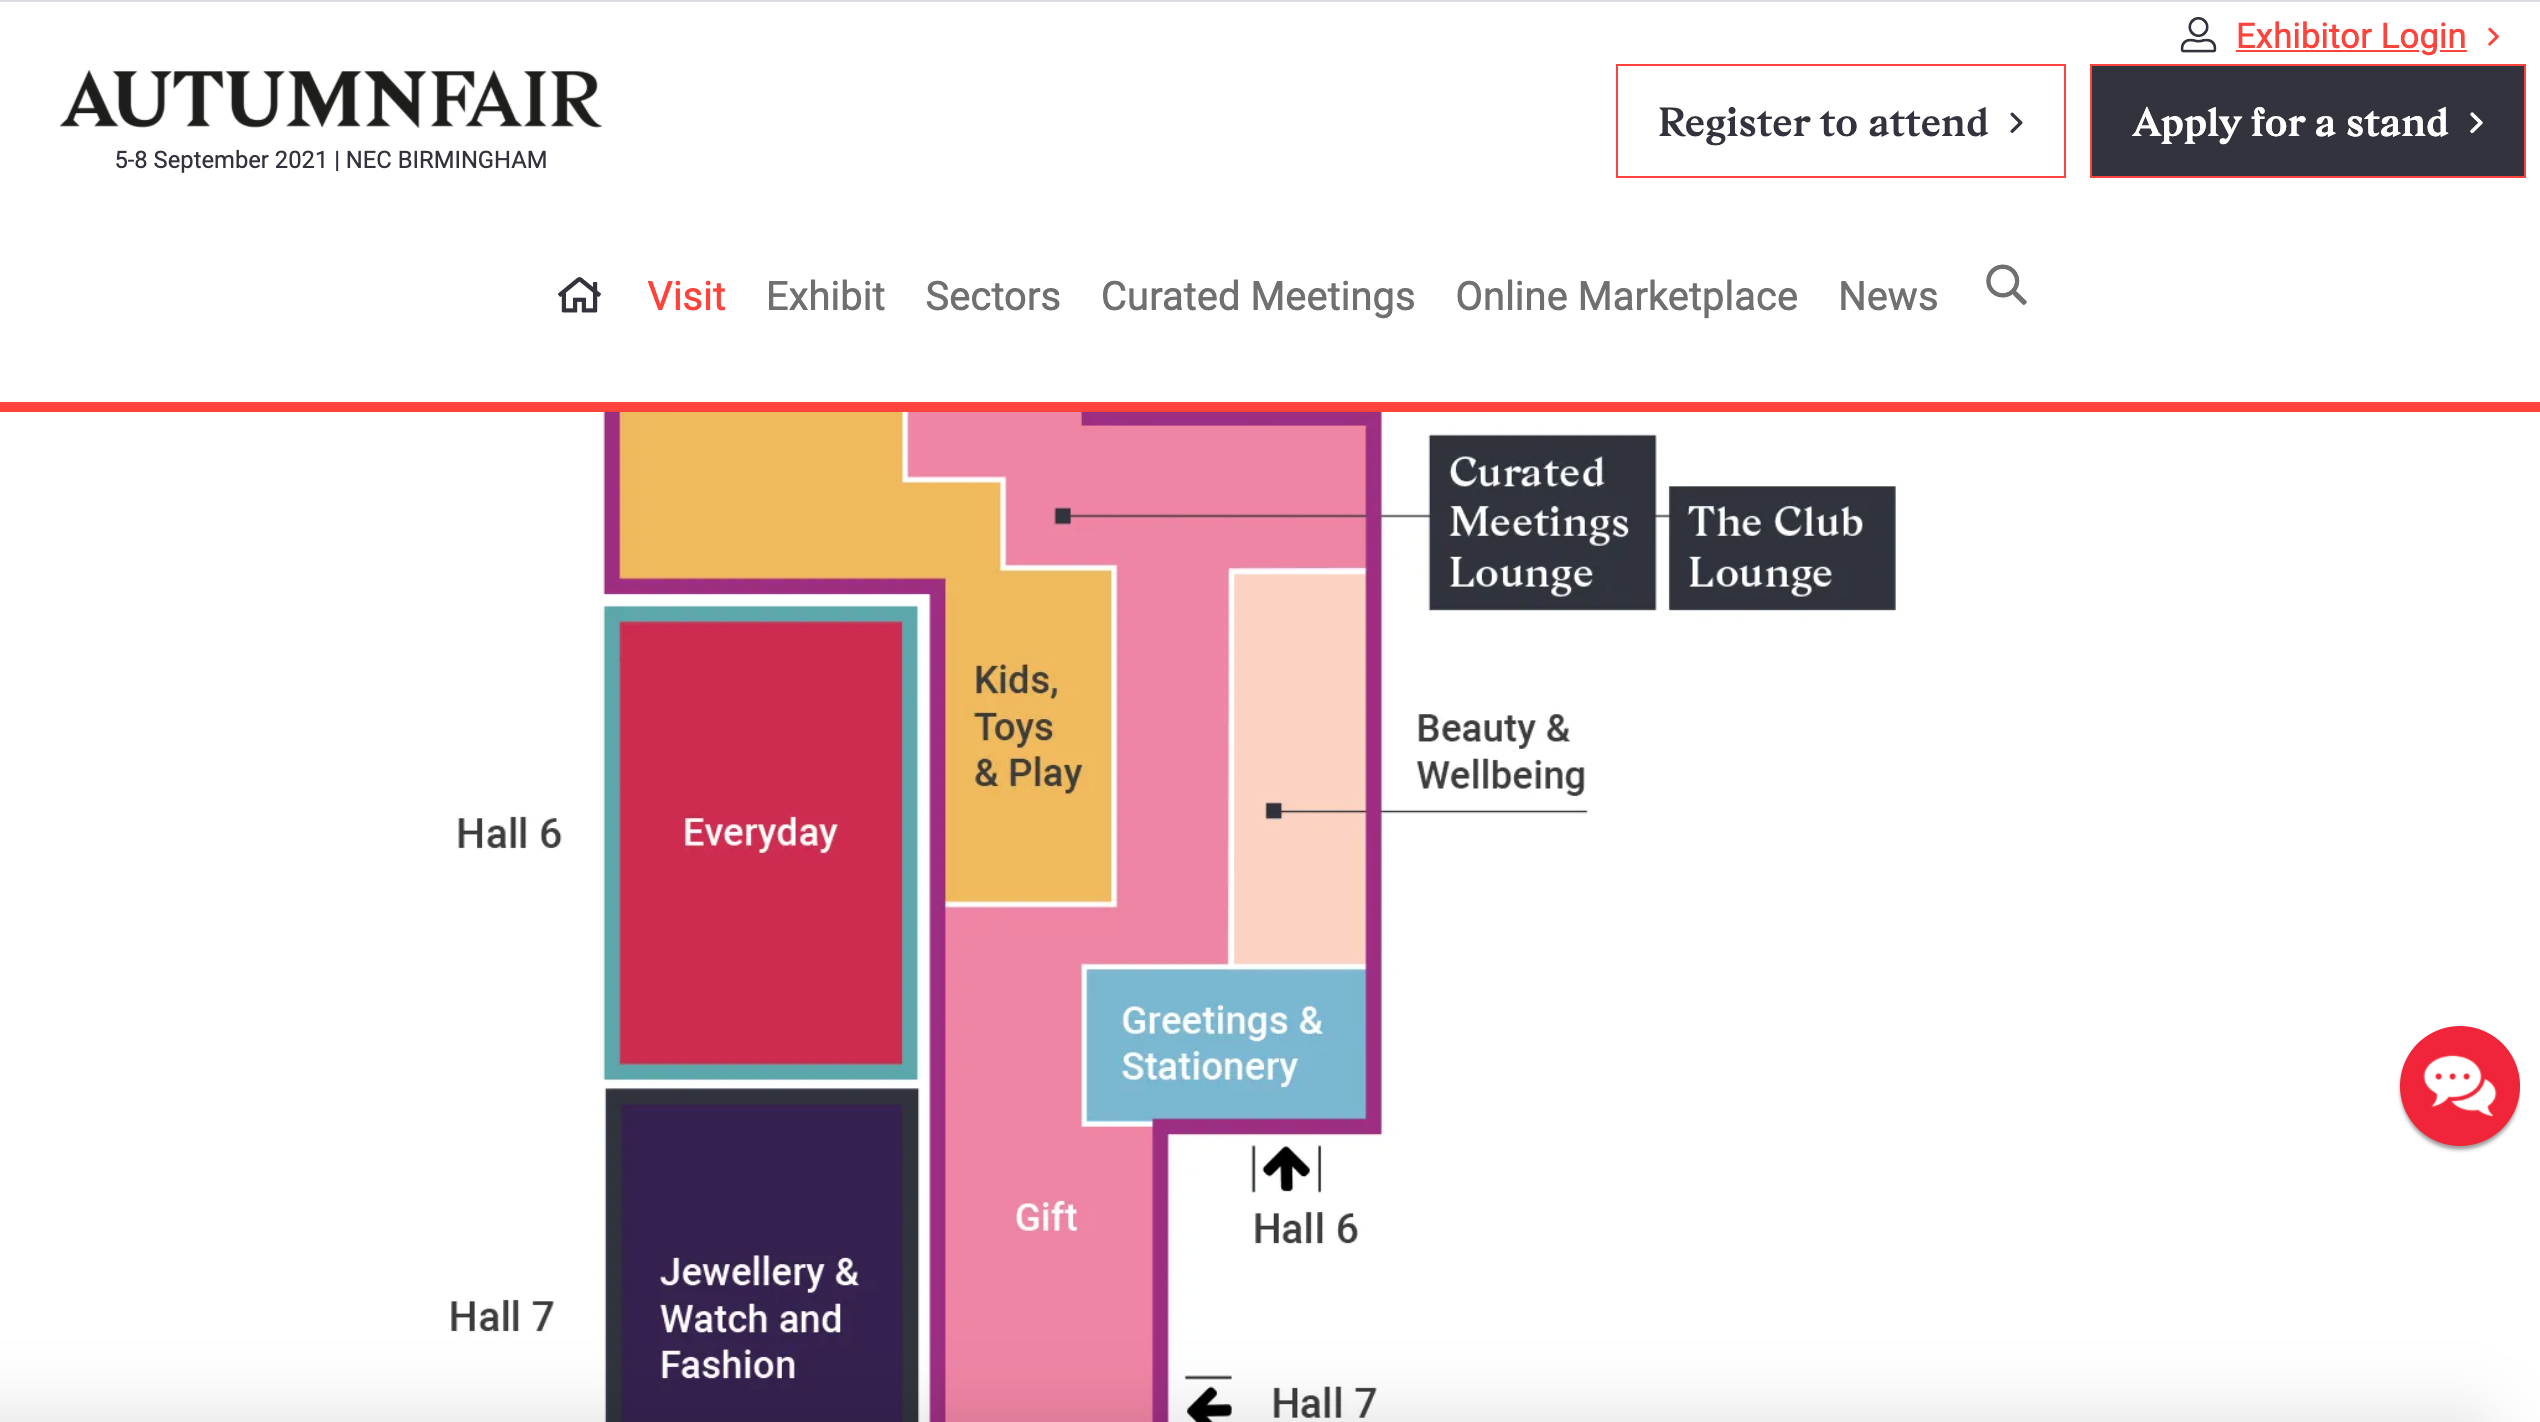 Above: The Greetings & Stationery section will be housed in Hall 6 at Autumn Fair. The full floorplan as well as the whole seminar and exhibitor programme can be found on the show's website.